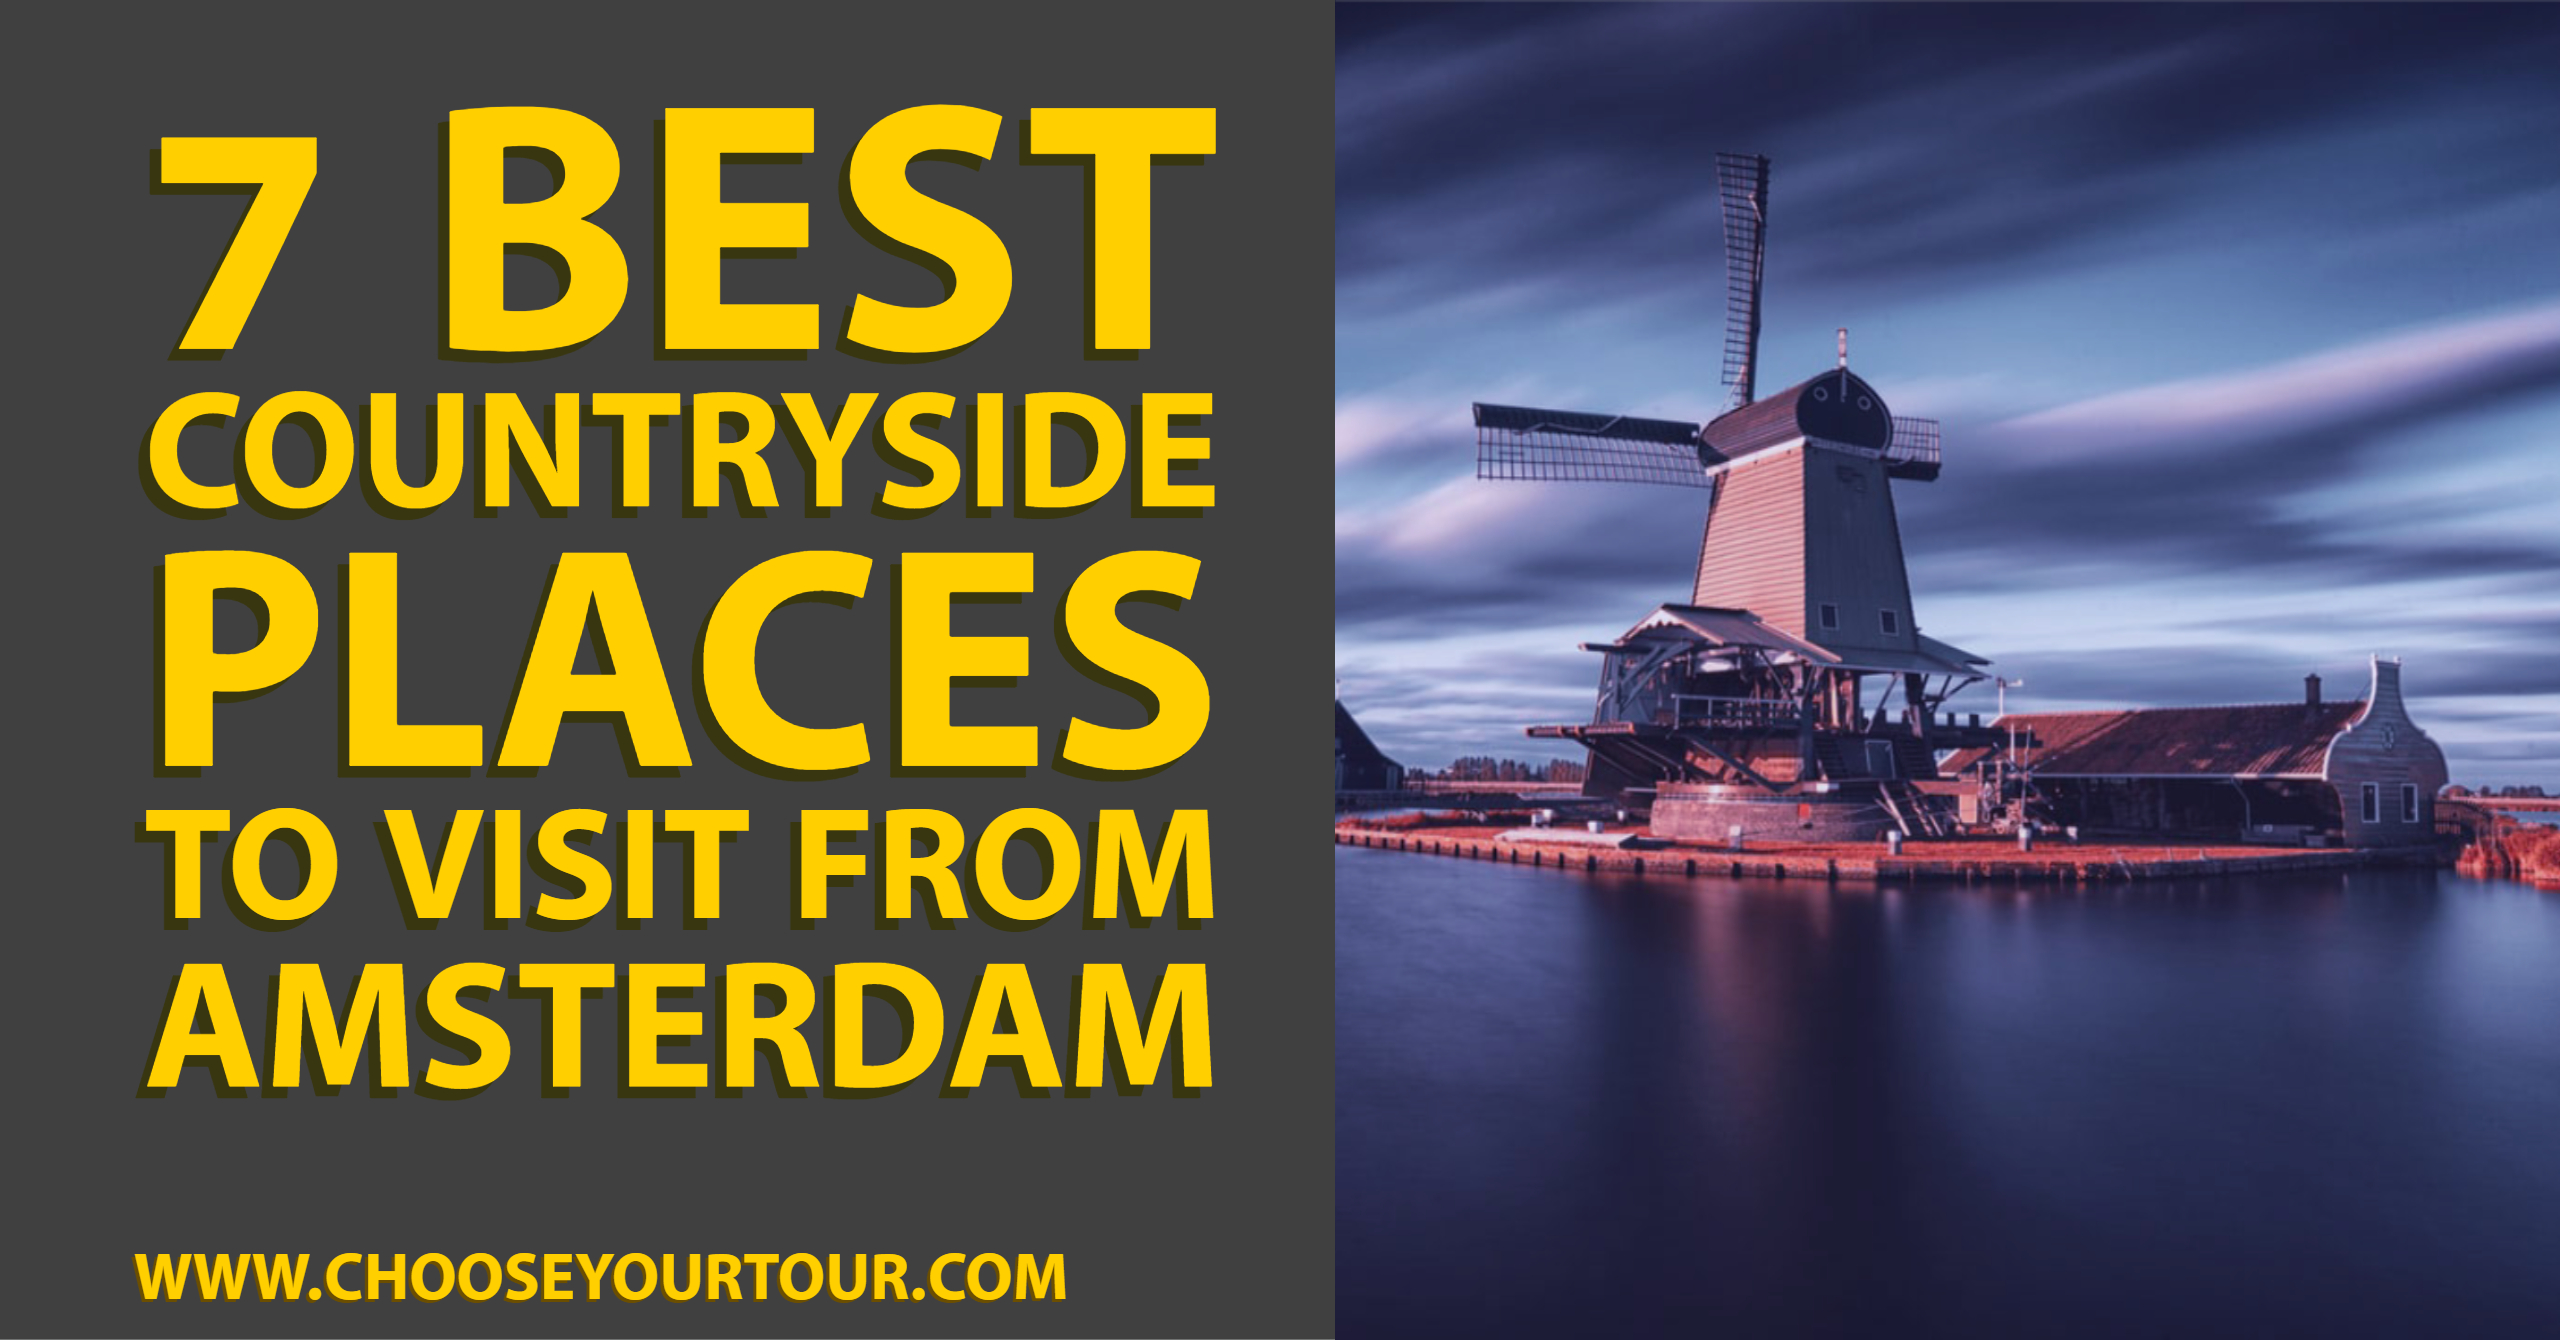 7 Best Countryside Places to Visit from Amsterdam